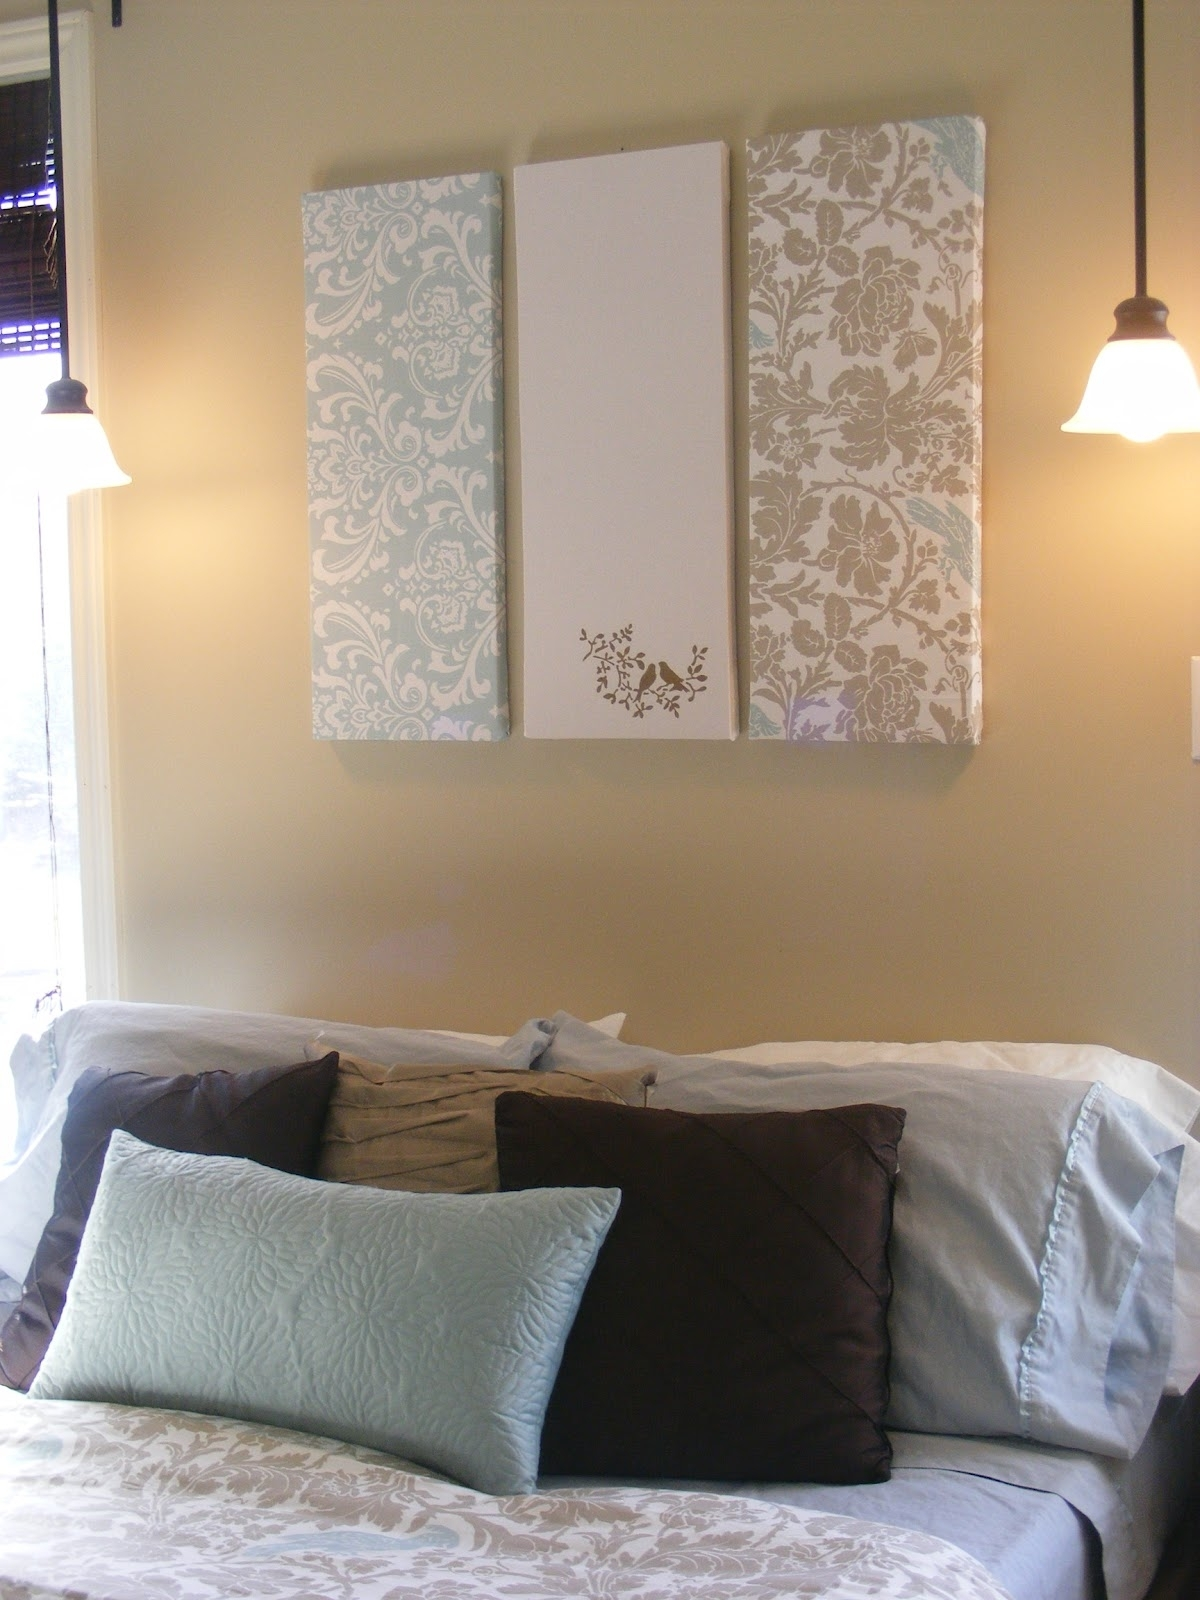 The Complete Guide To Imperfect Homemaking: Simple, Thrifty Diy Art In Most Recently Released Fabric Covered Foam Wall Art (View 5 of 15)